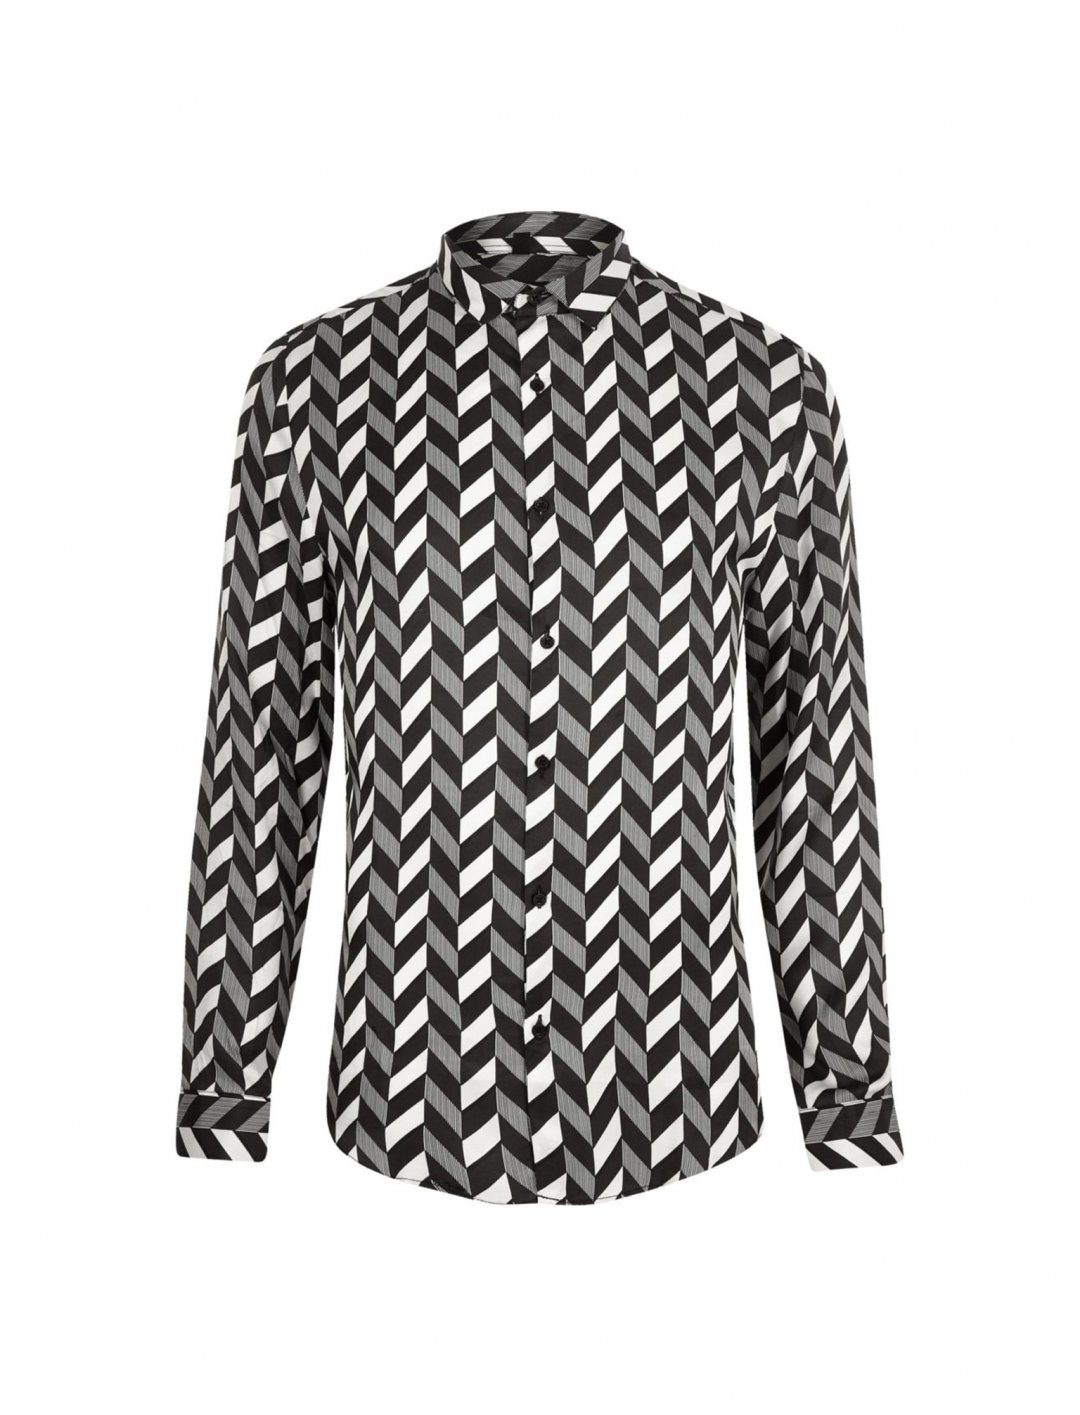 "Mono Print Shirt {""id"":5,""product_section_id"":1,""name"":""Clothing"",""order"":5} Olly Murs x River Island"